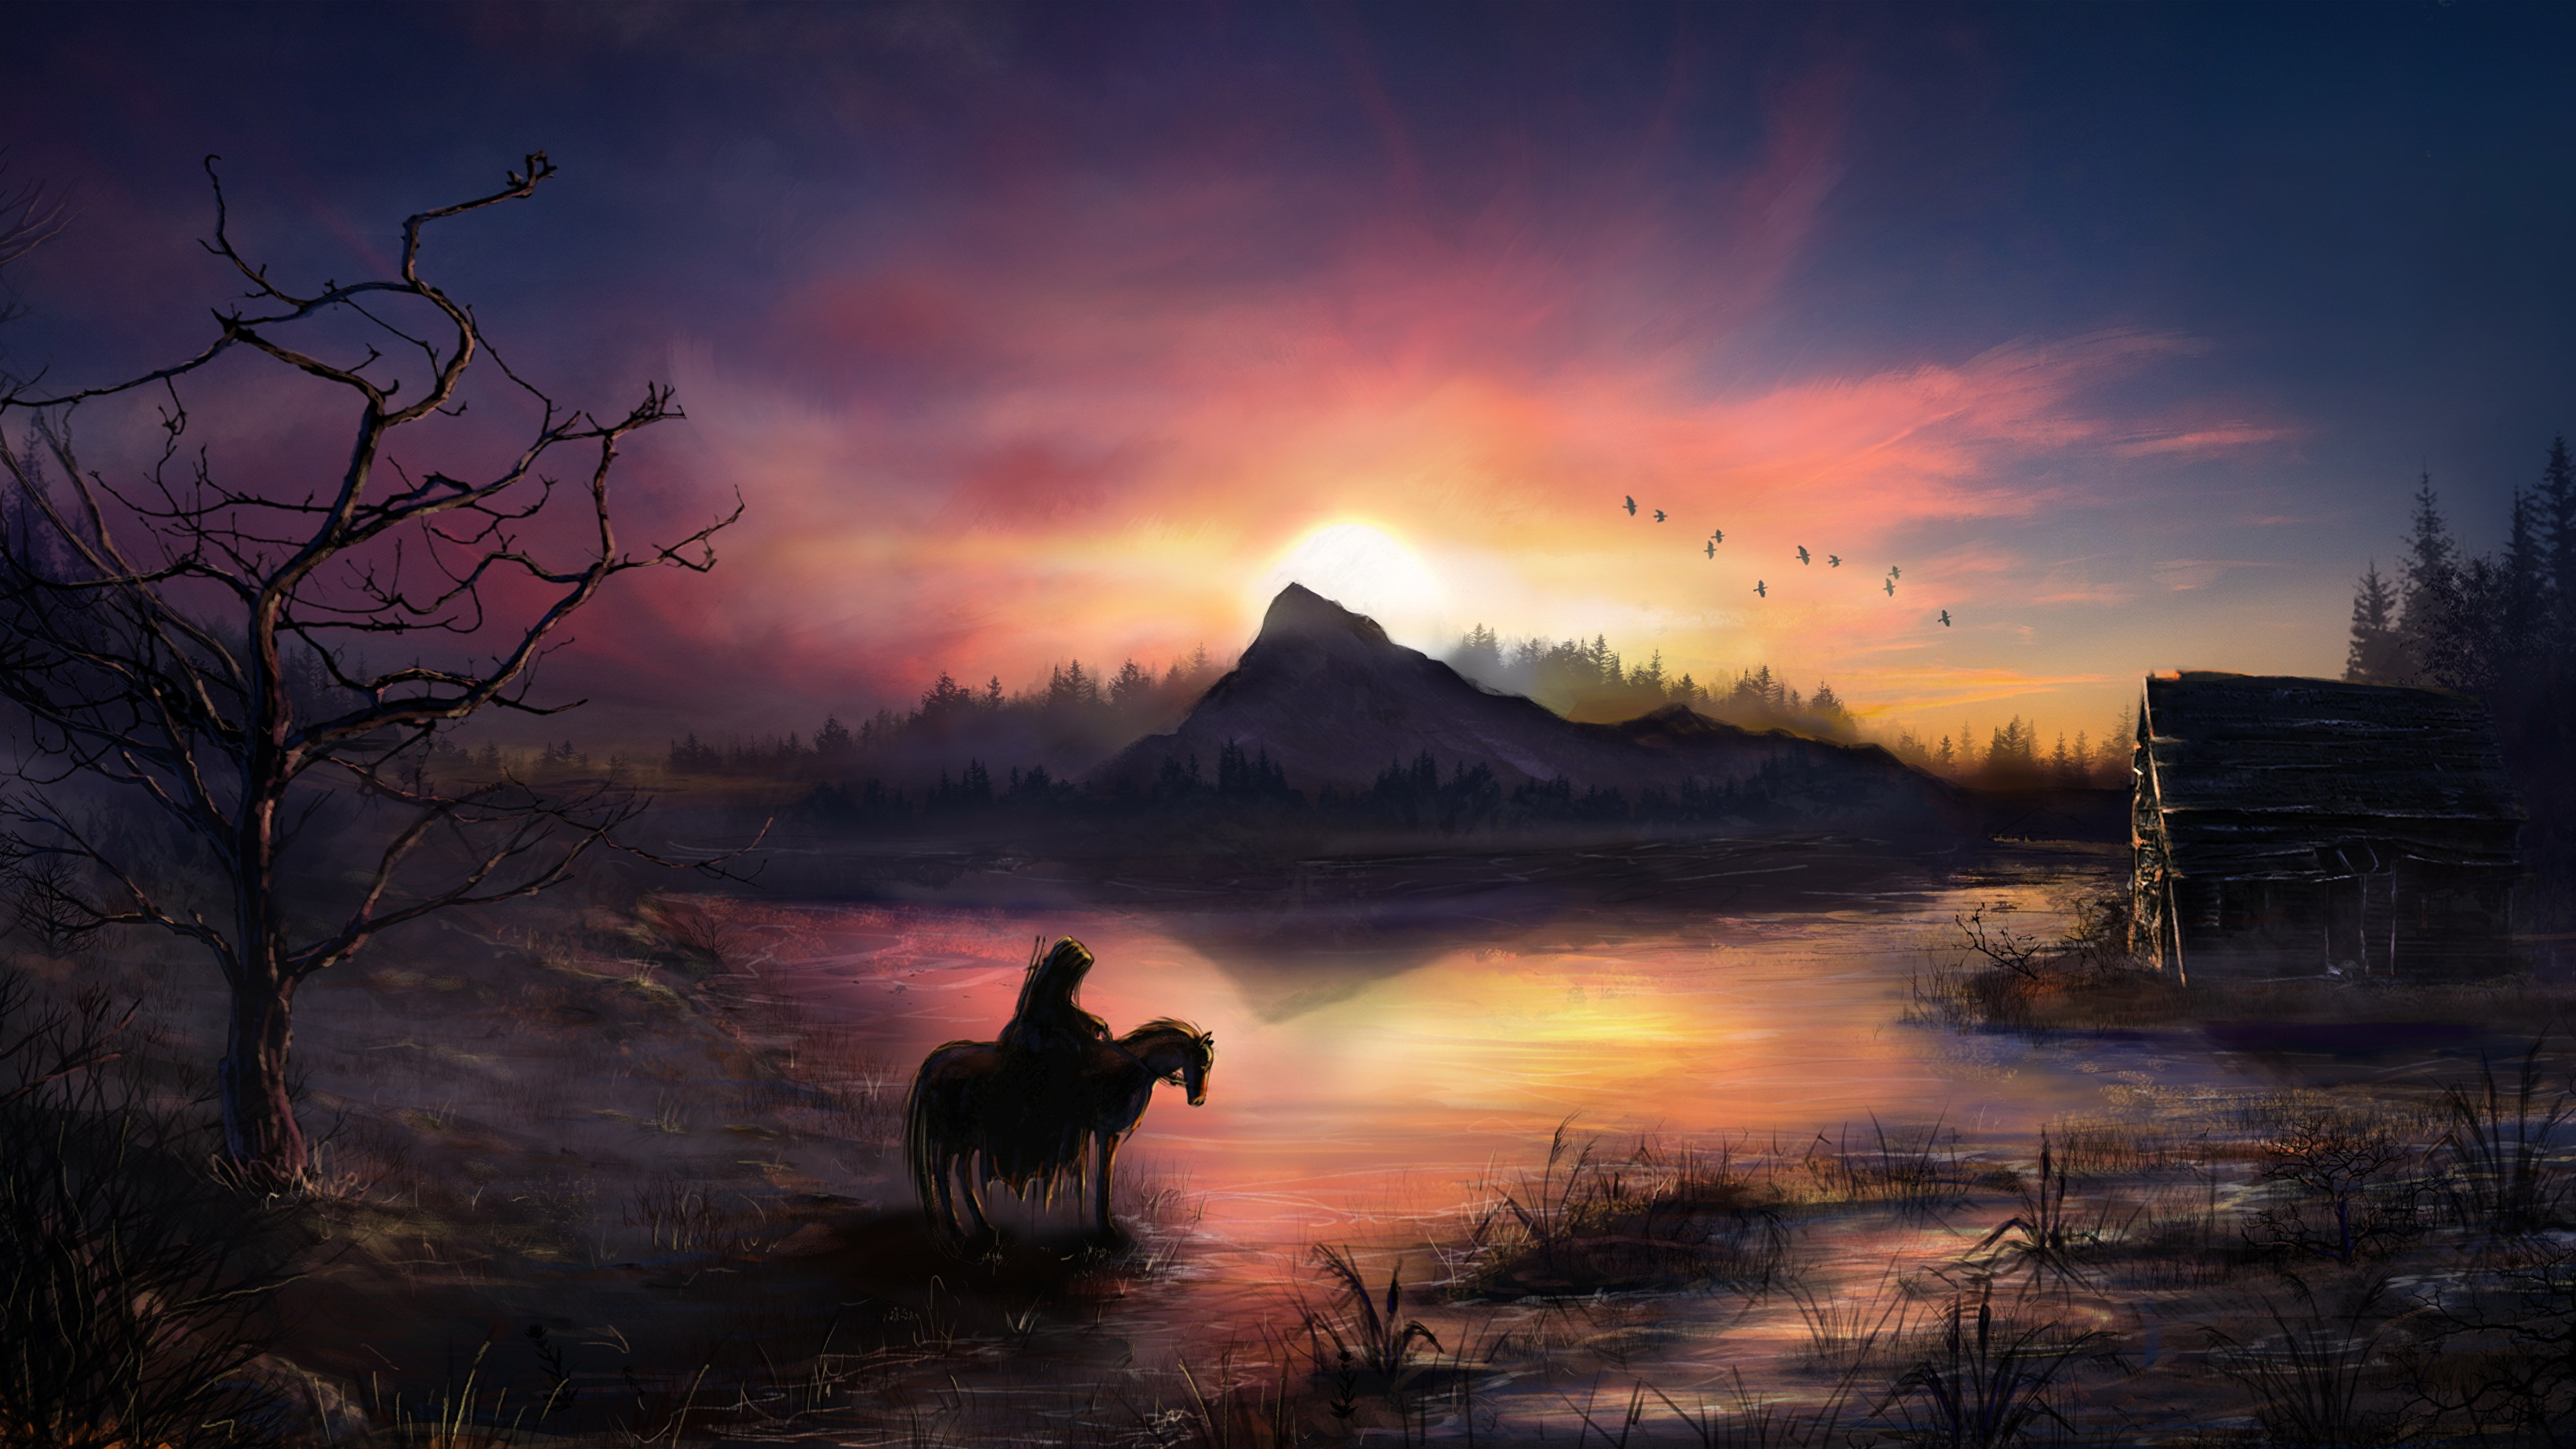 Wallpaper Horses Warriors Fantasy Sunrises and sunsets 3840x2160